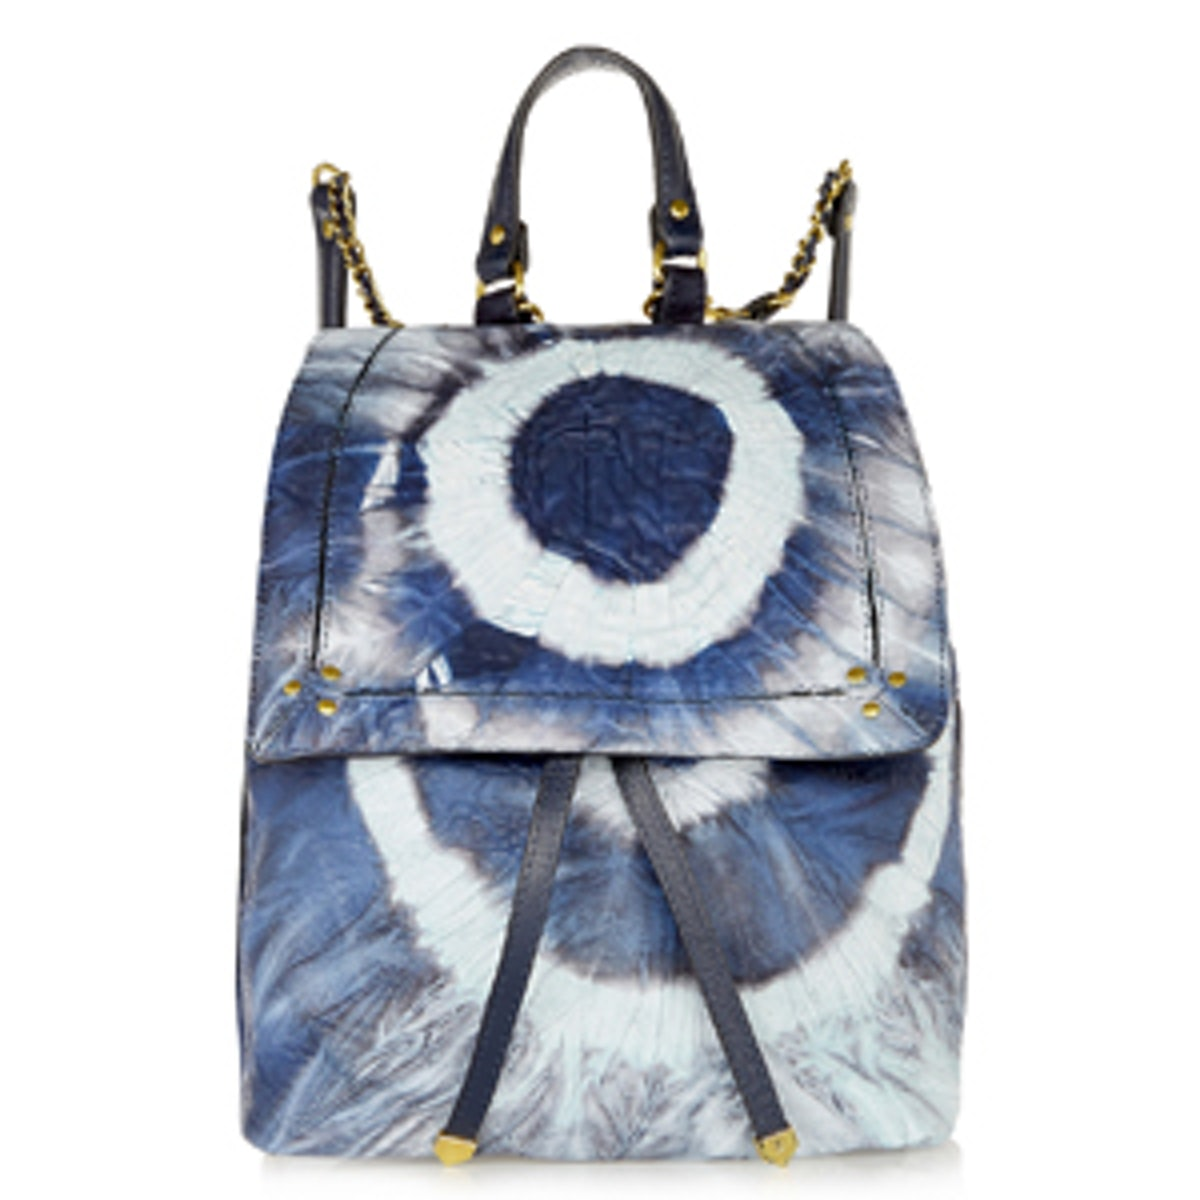 Florent Tie-Dyed Leather Backpack